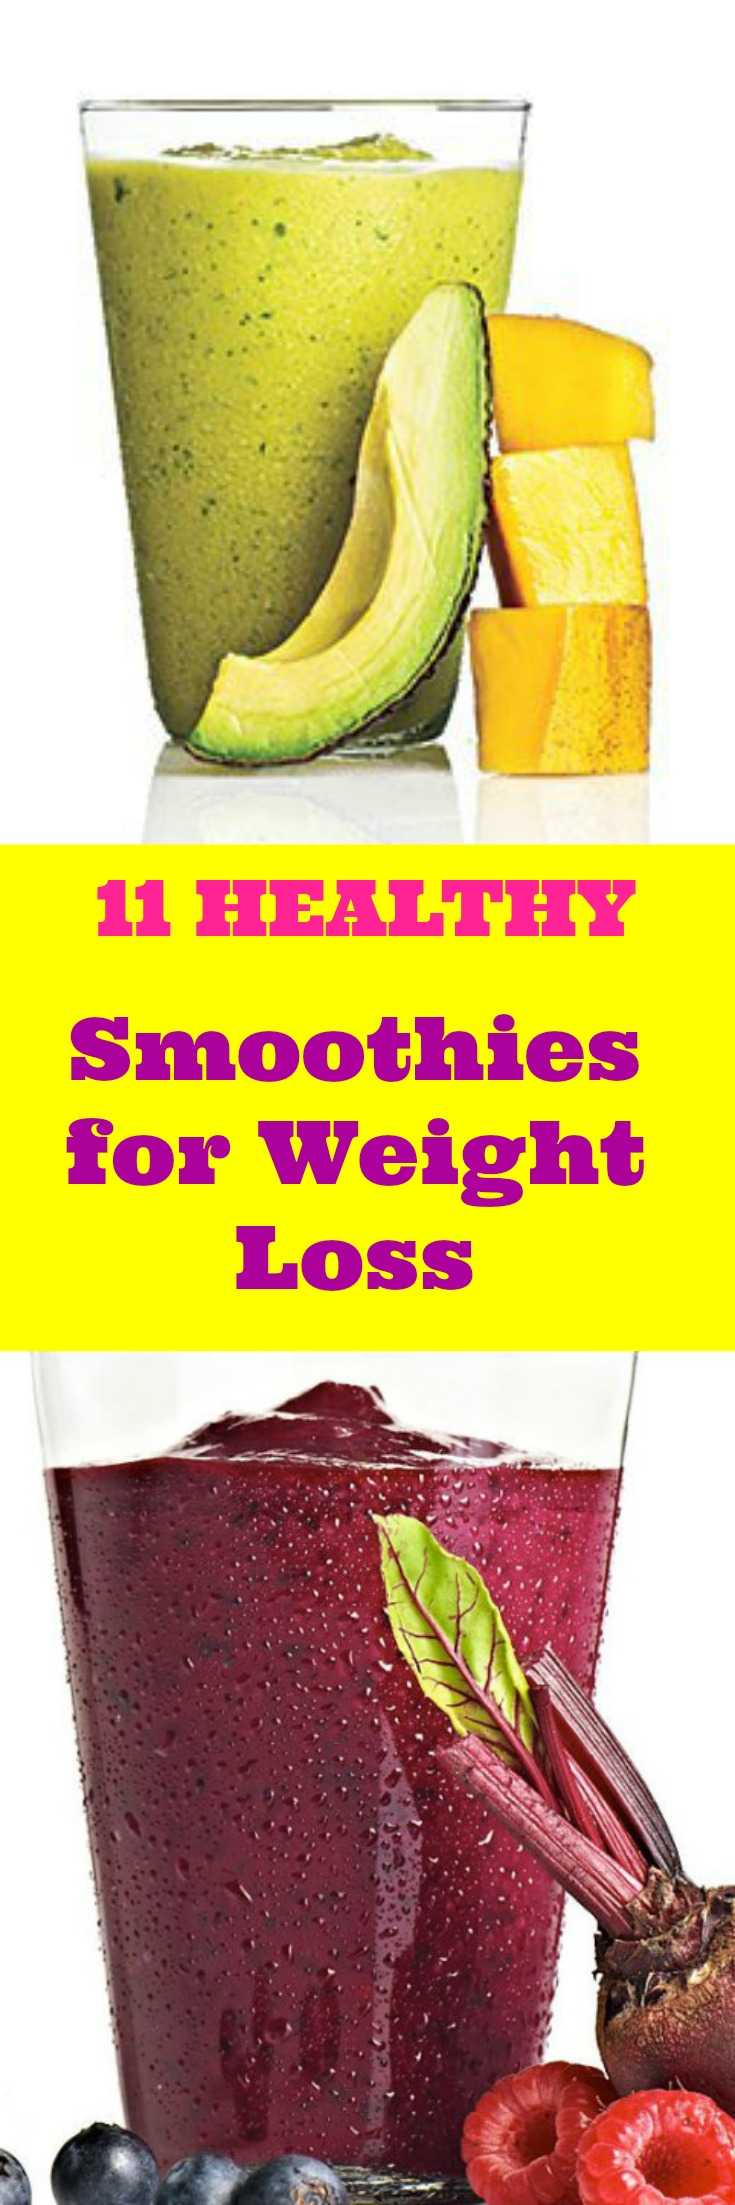 Make a head healthy breakfast smoothie for weight loss. High protien detox recipes for a healthy breakfast.